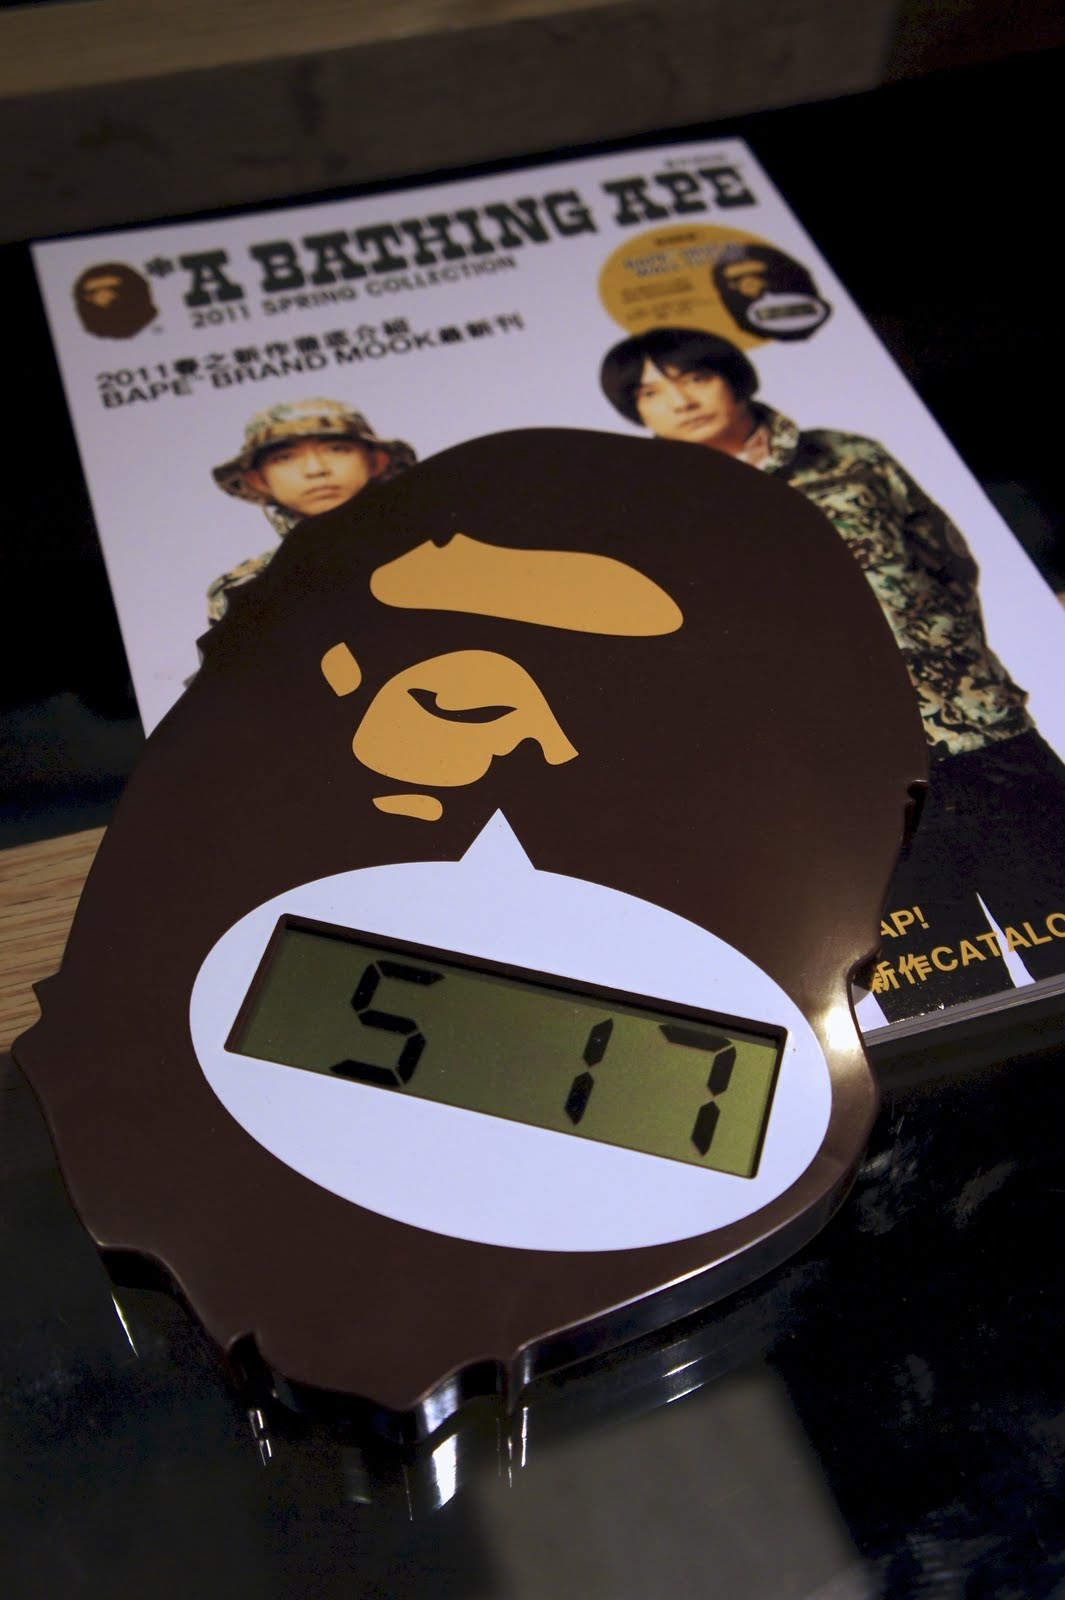 d6fa7bbe Their catalogues always come with a little present – this time I got a  Digital BAPE® Wall clock from A Bathing Ape 2011 spring collection  catalogue.